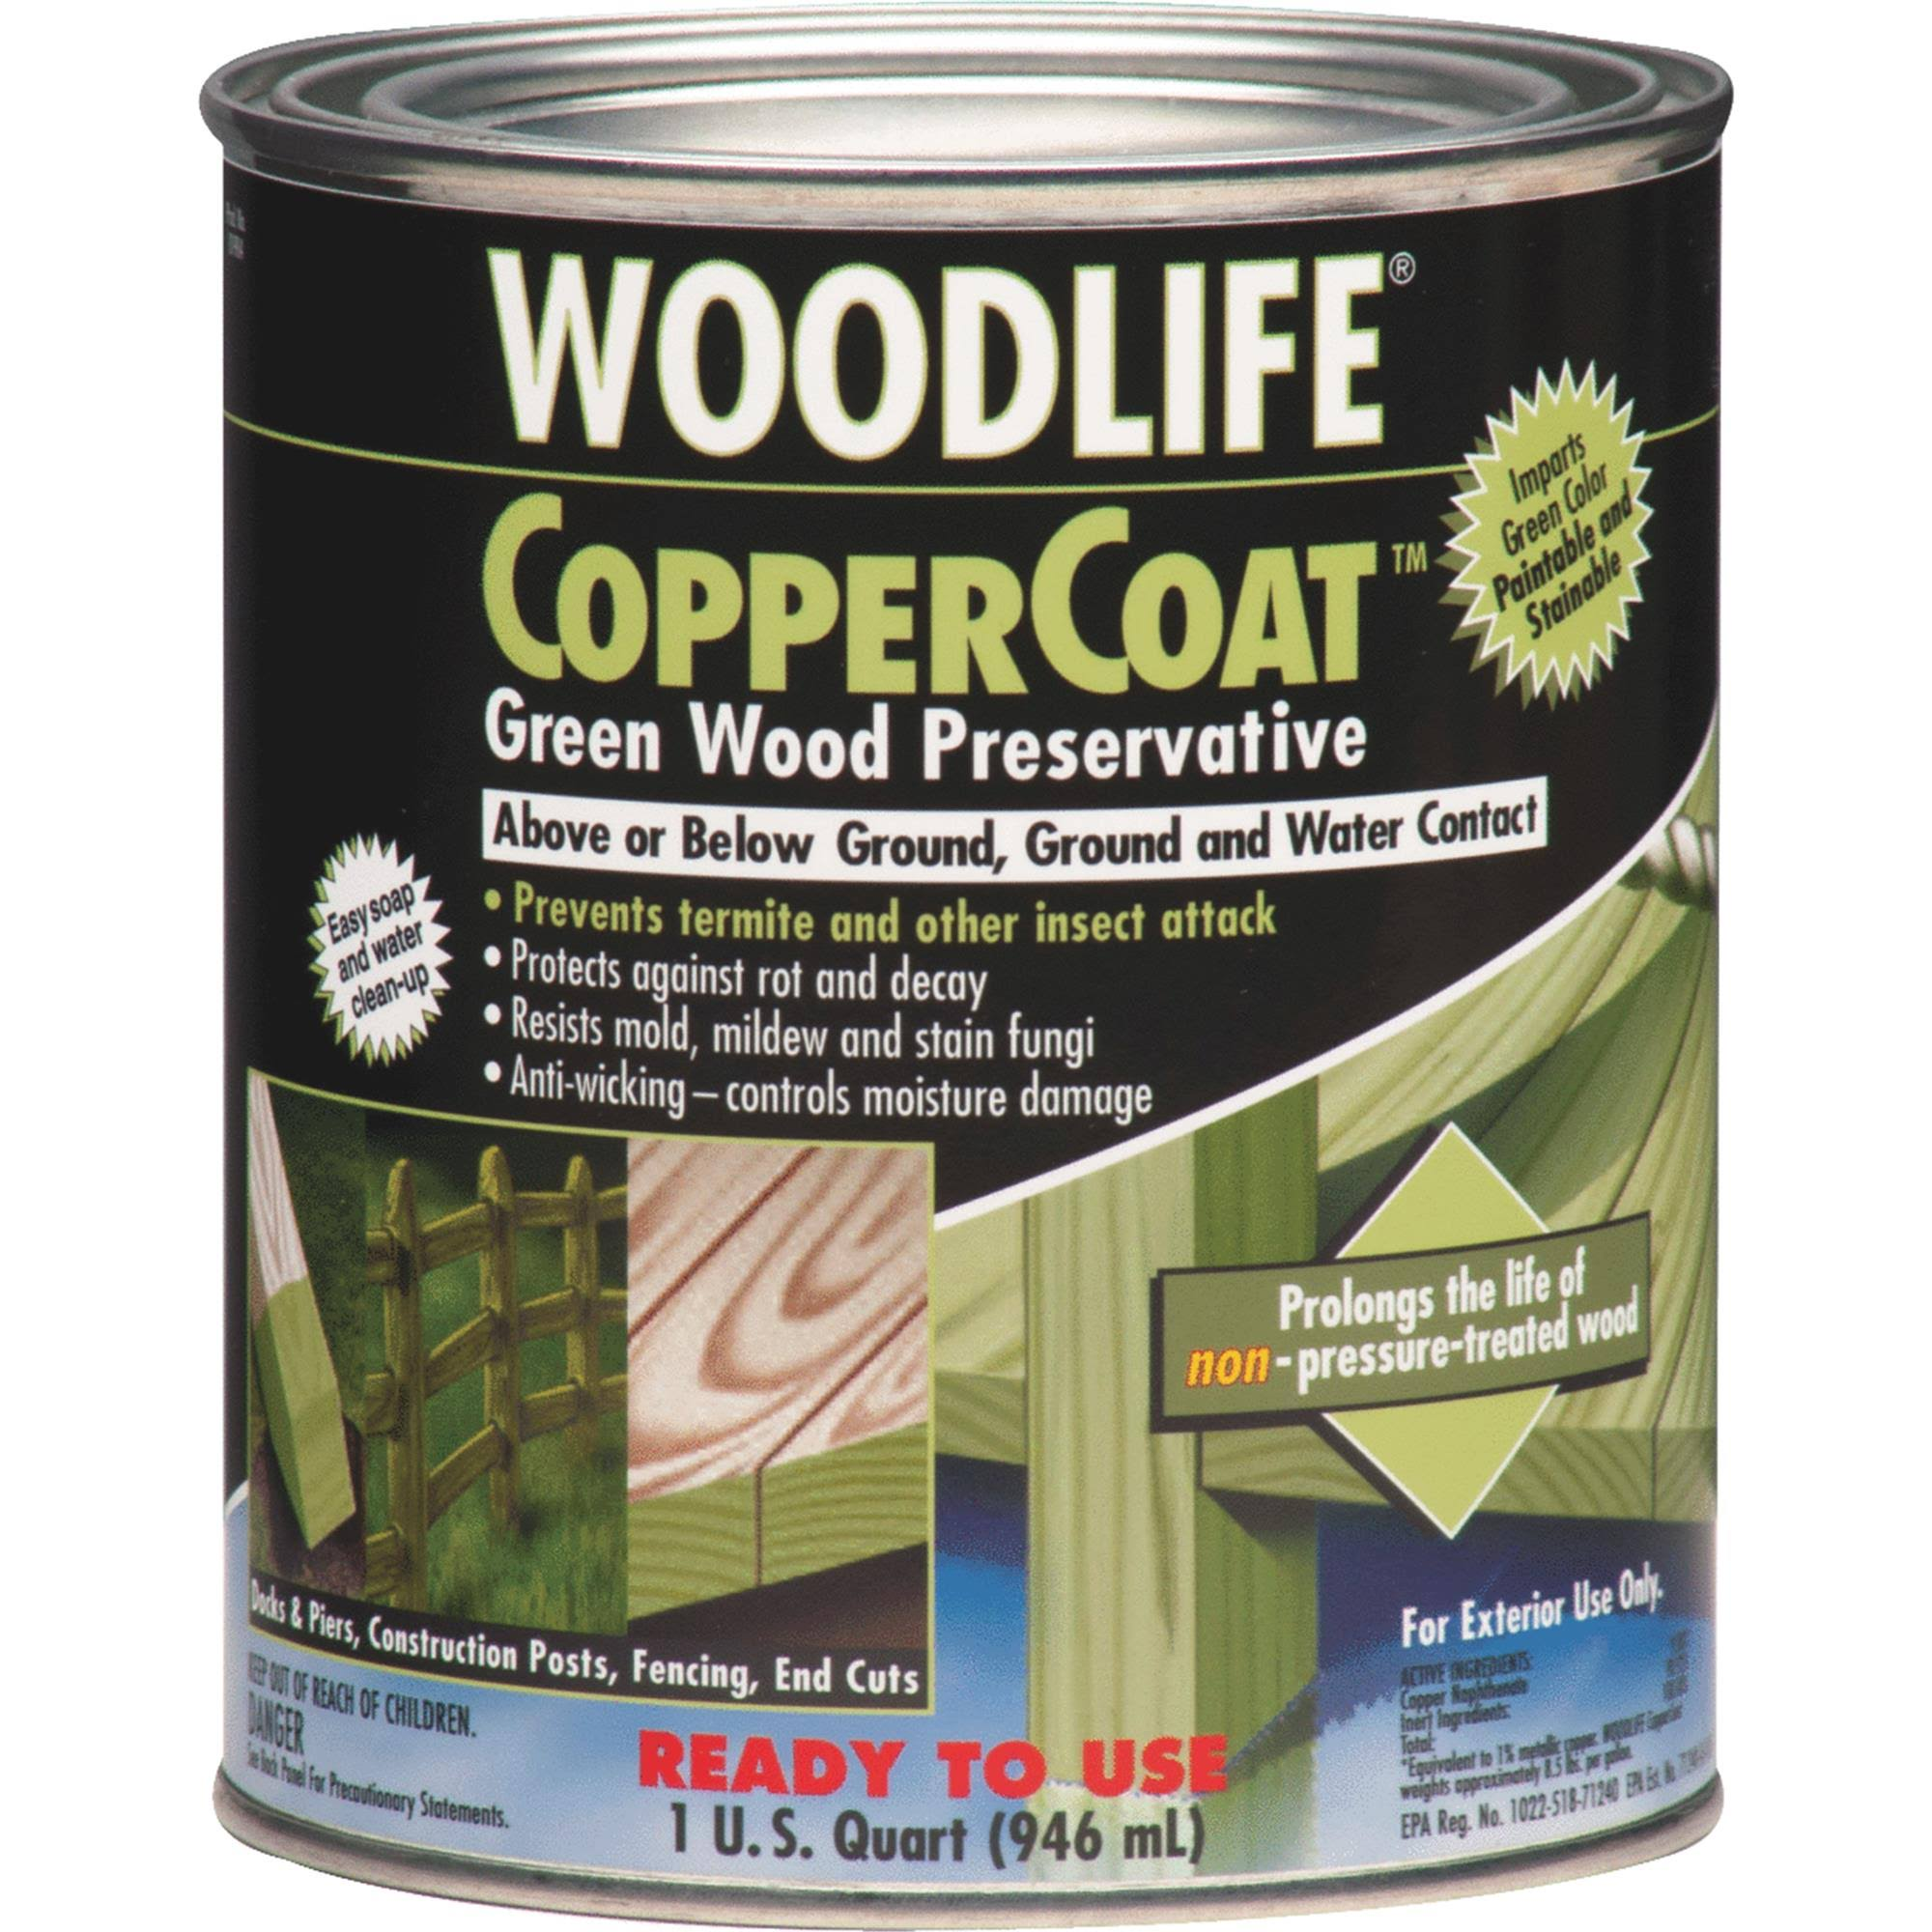 Rust Oleum 1904A Woodlife Coppercoat Green Wood Preservative - 1 Quart, Green